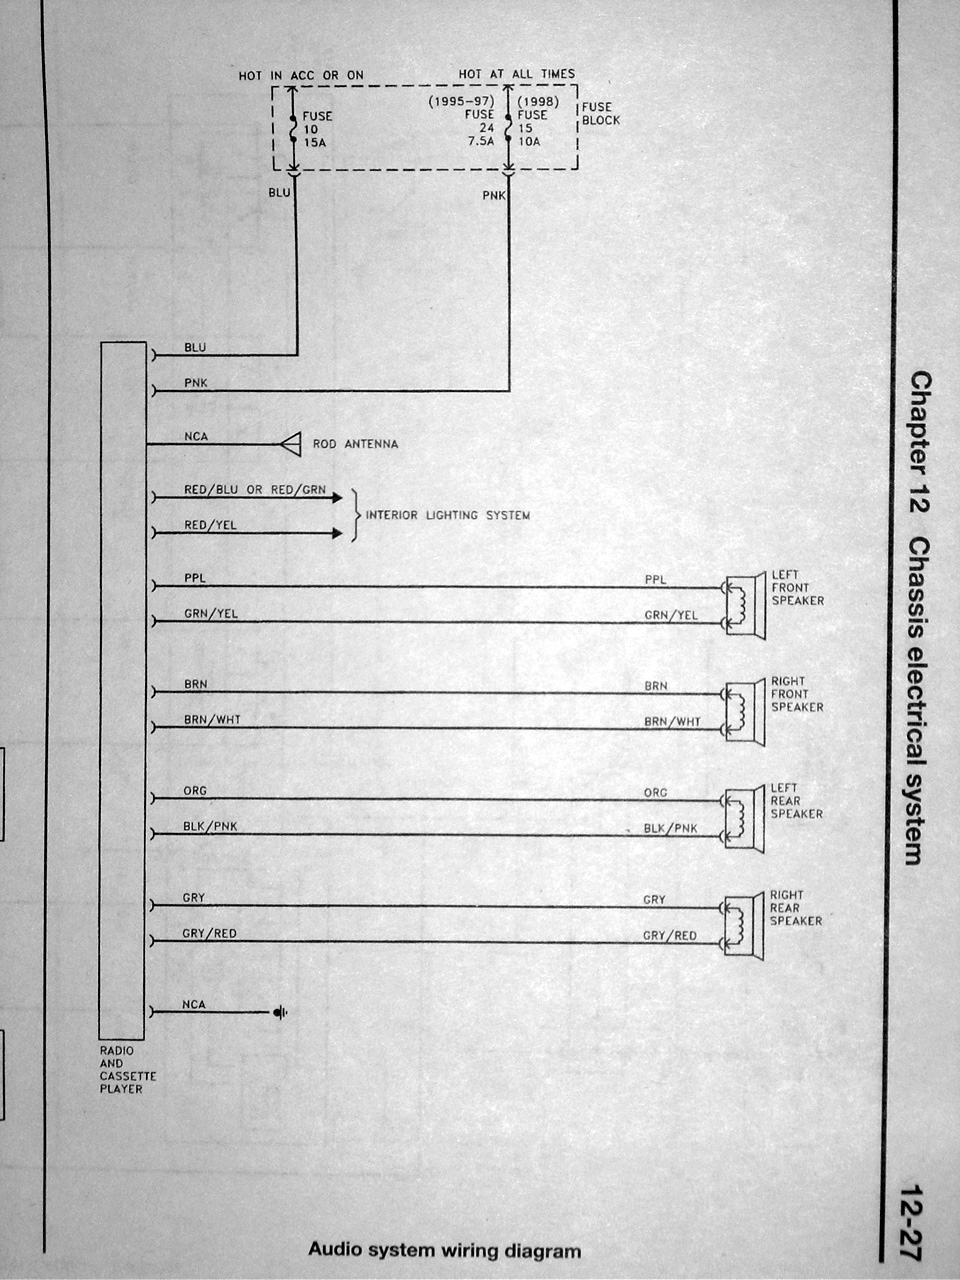 DSC01849 1994 nissan sentra wiring diagram 1994 nissan pathfinder wiring 1994 nissan sentra fuse box diagram at reclaimingppi.co